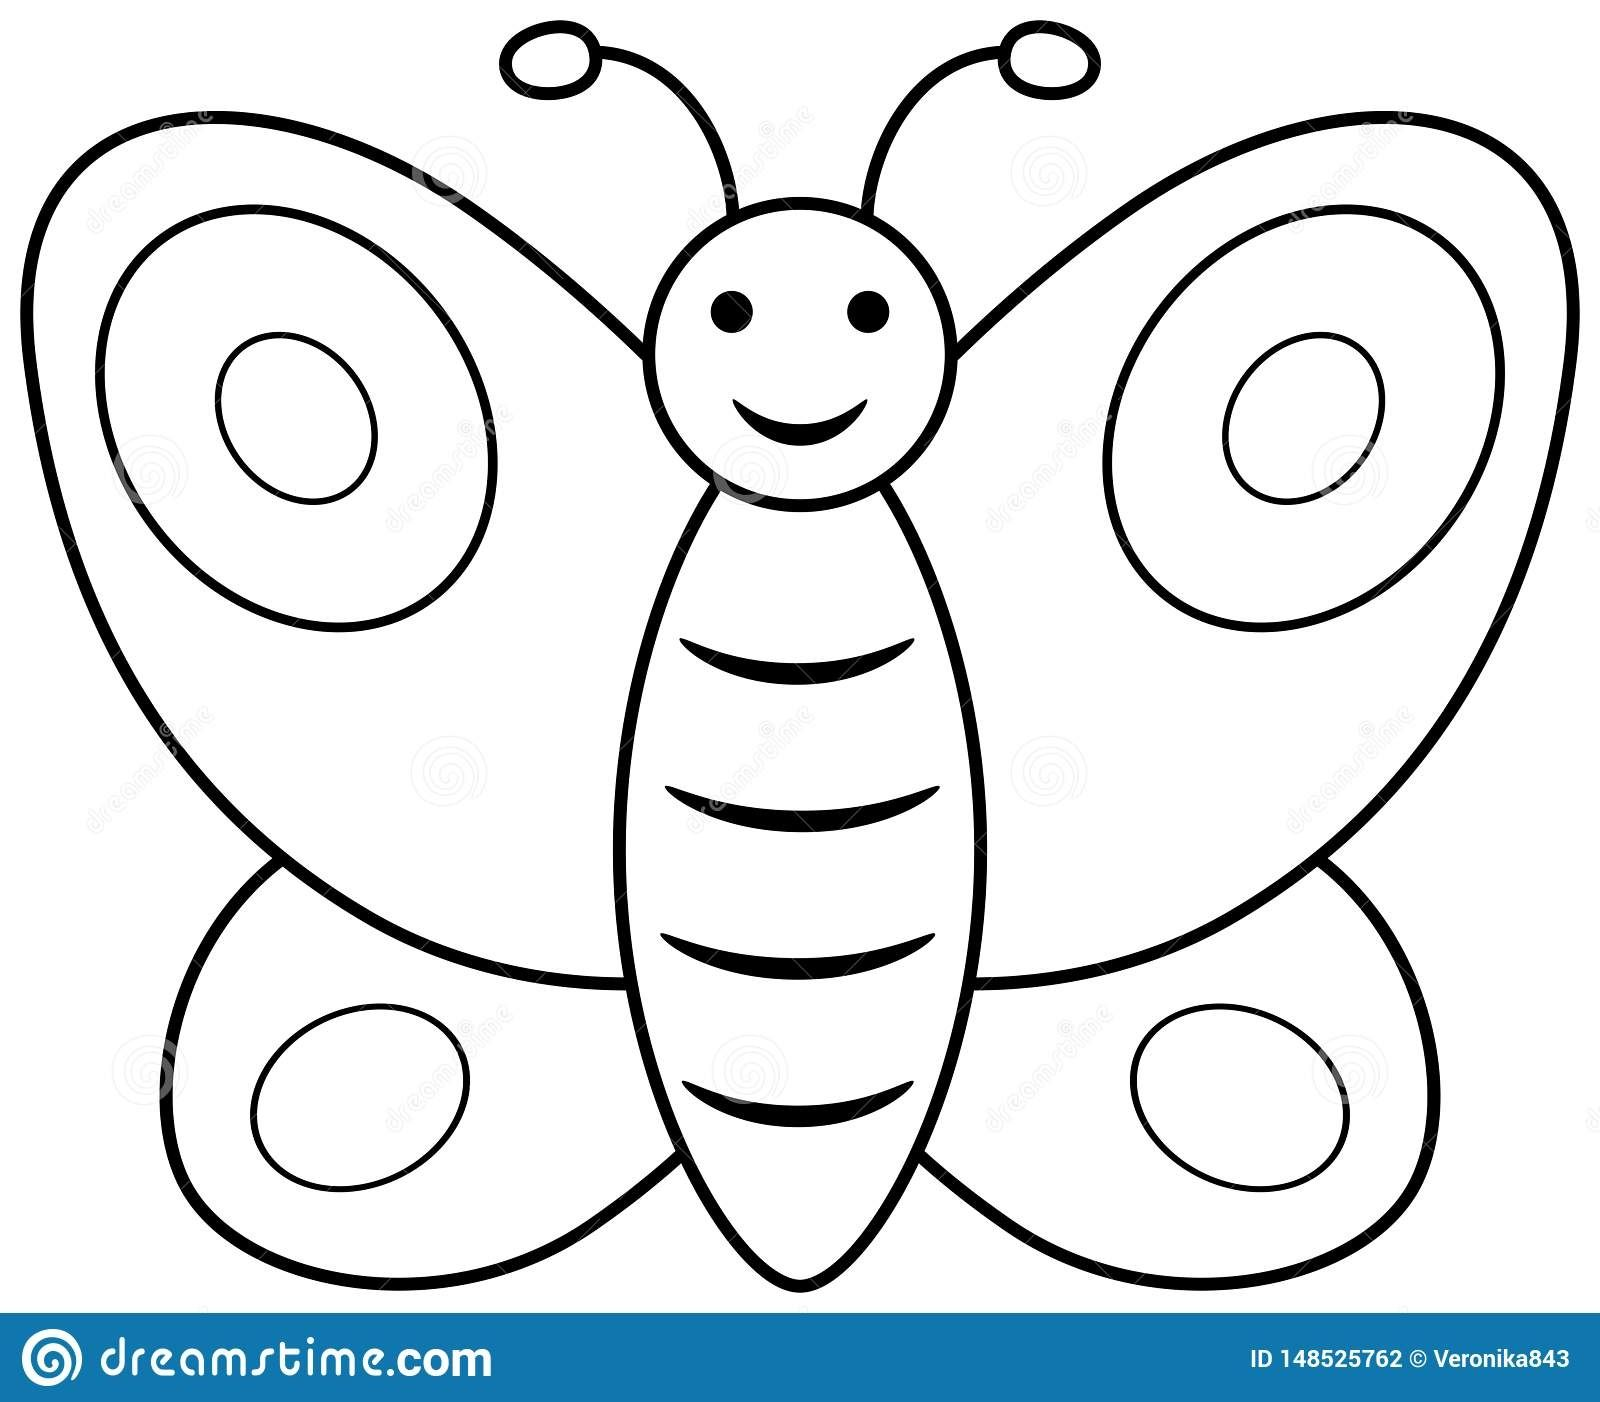 Butterfly Clipart Outline Images In 2021 Butterfly Coloring Page Butterfly Outline Butterfly Clip Art [ 1402 x 1600 Pixel ]